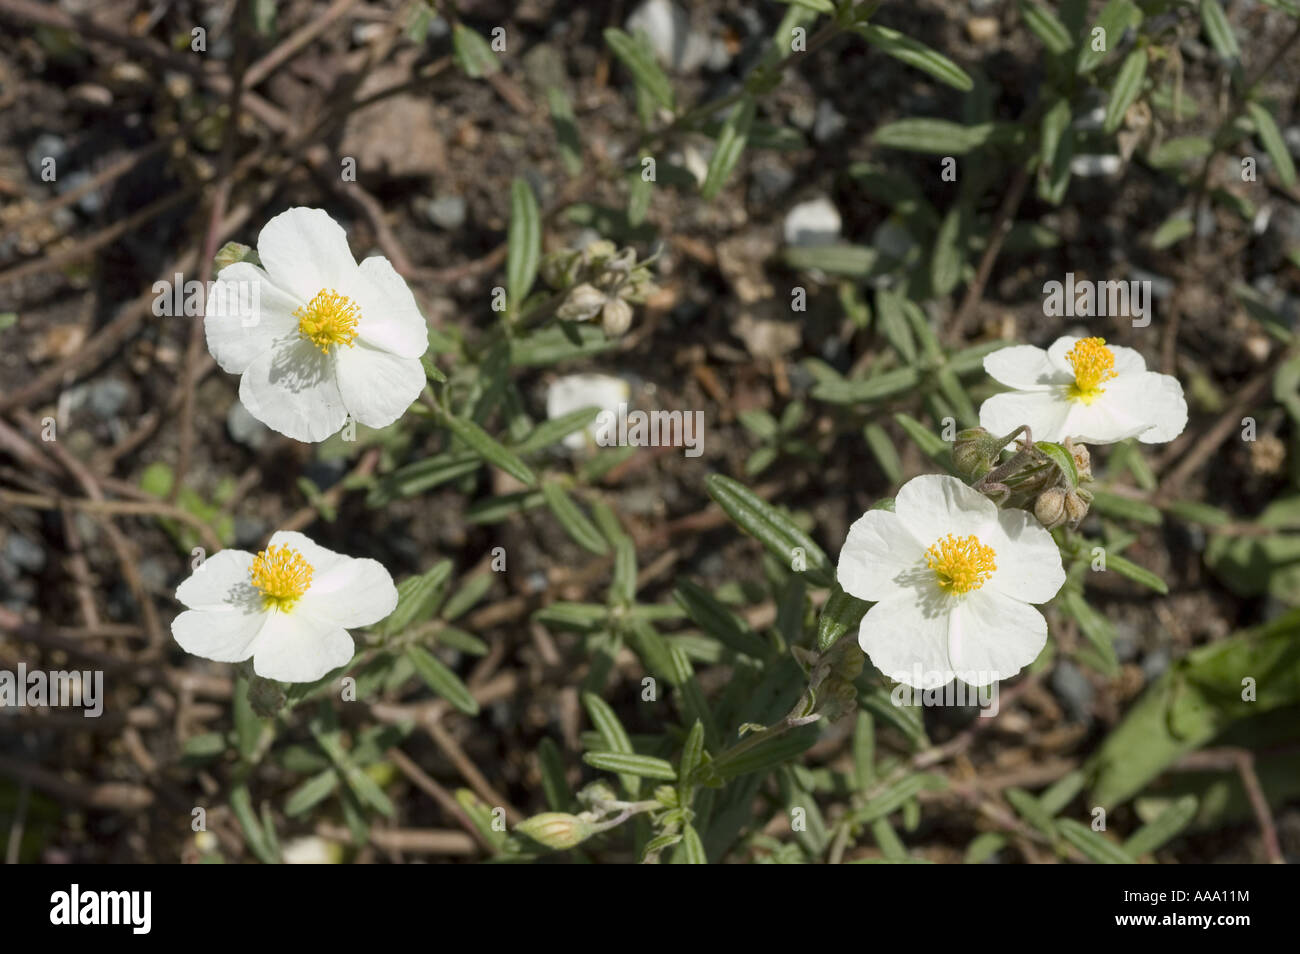 White rock flowers choice image flower decoration ideas white yellow spring flowers of white rock rose is a white flowering white yellow spring flowers mightylinksfo Gallery